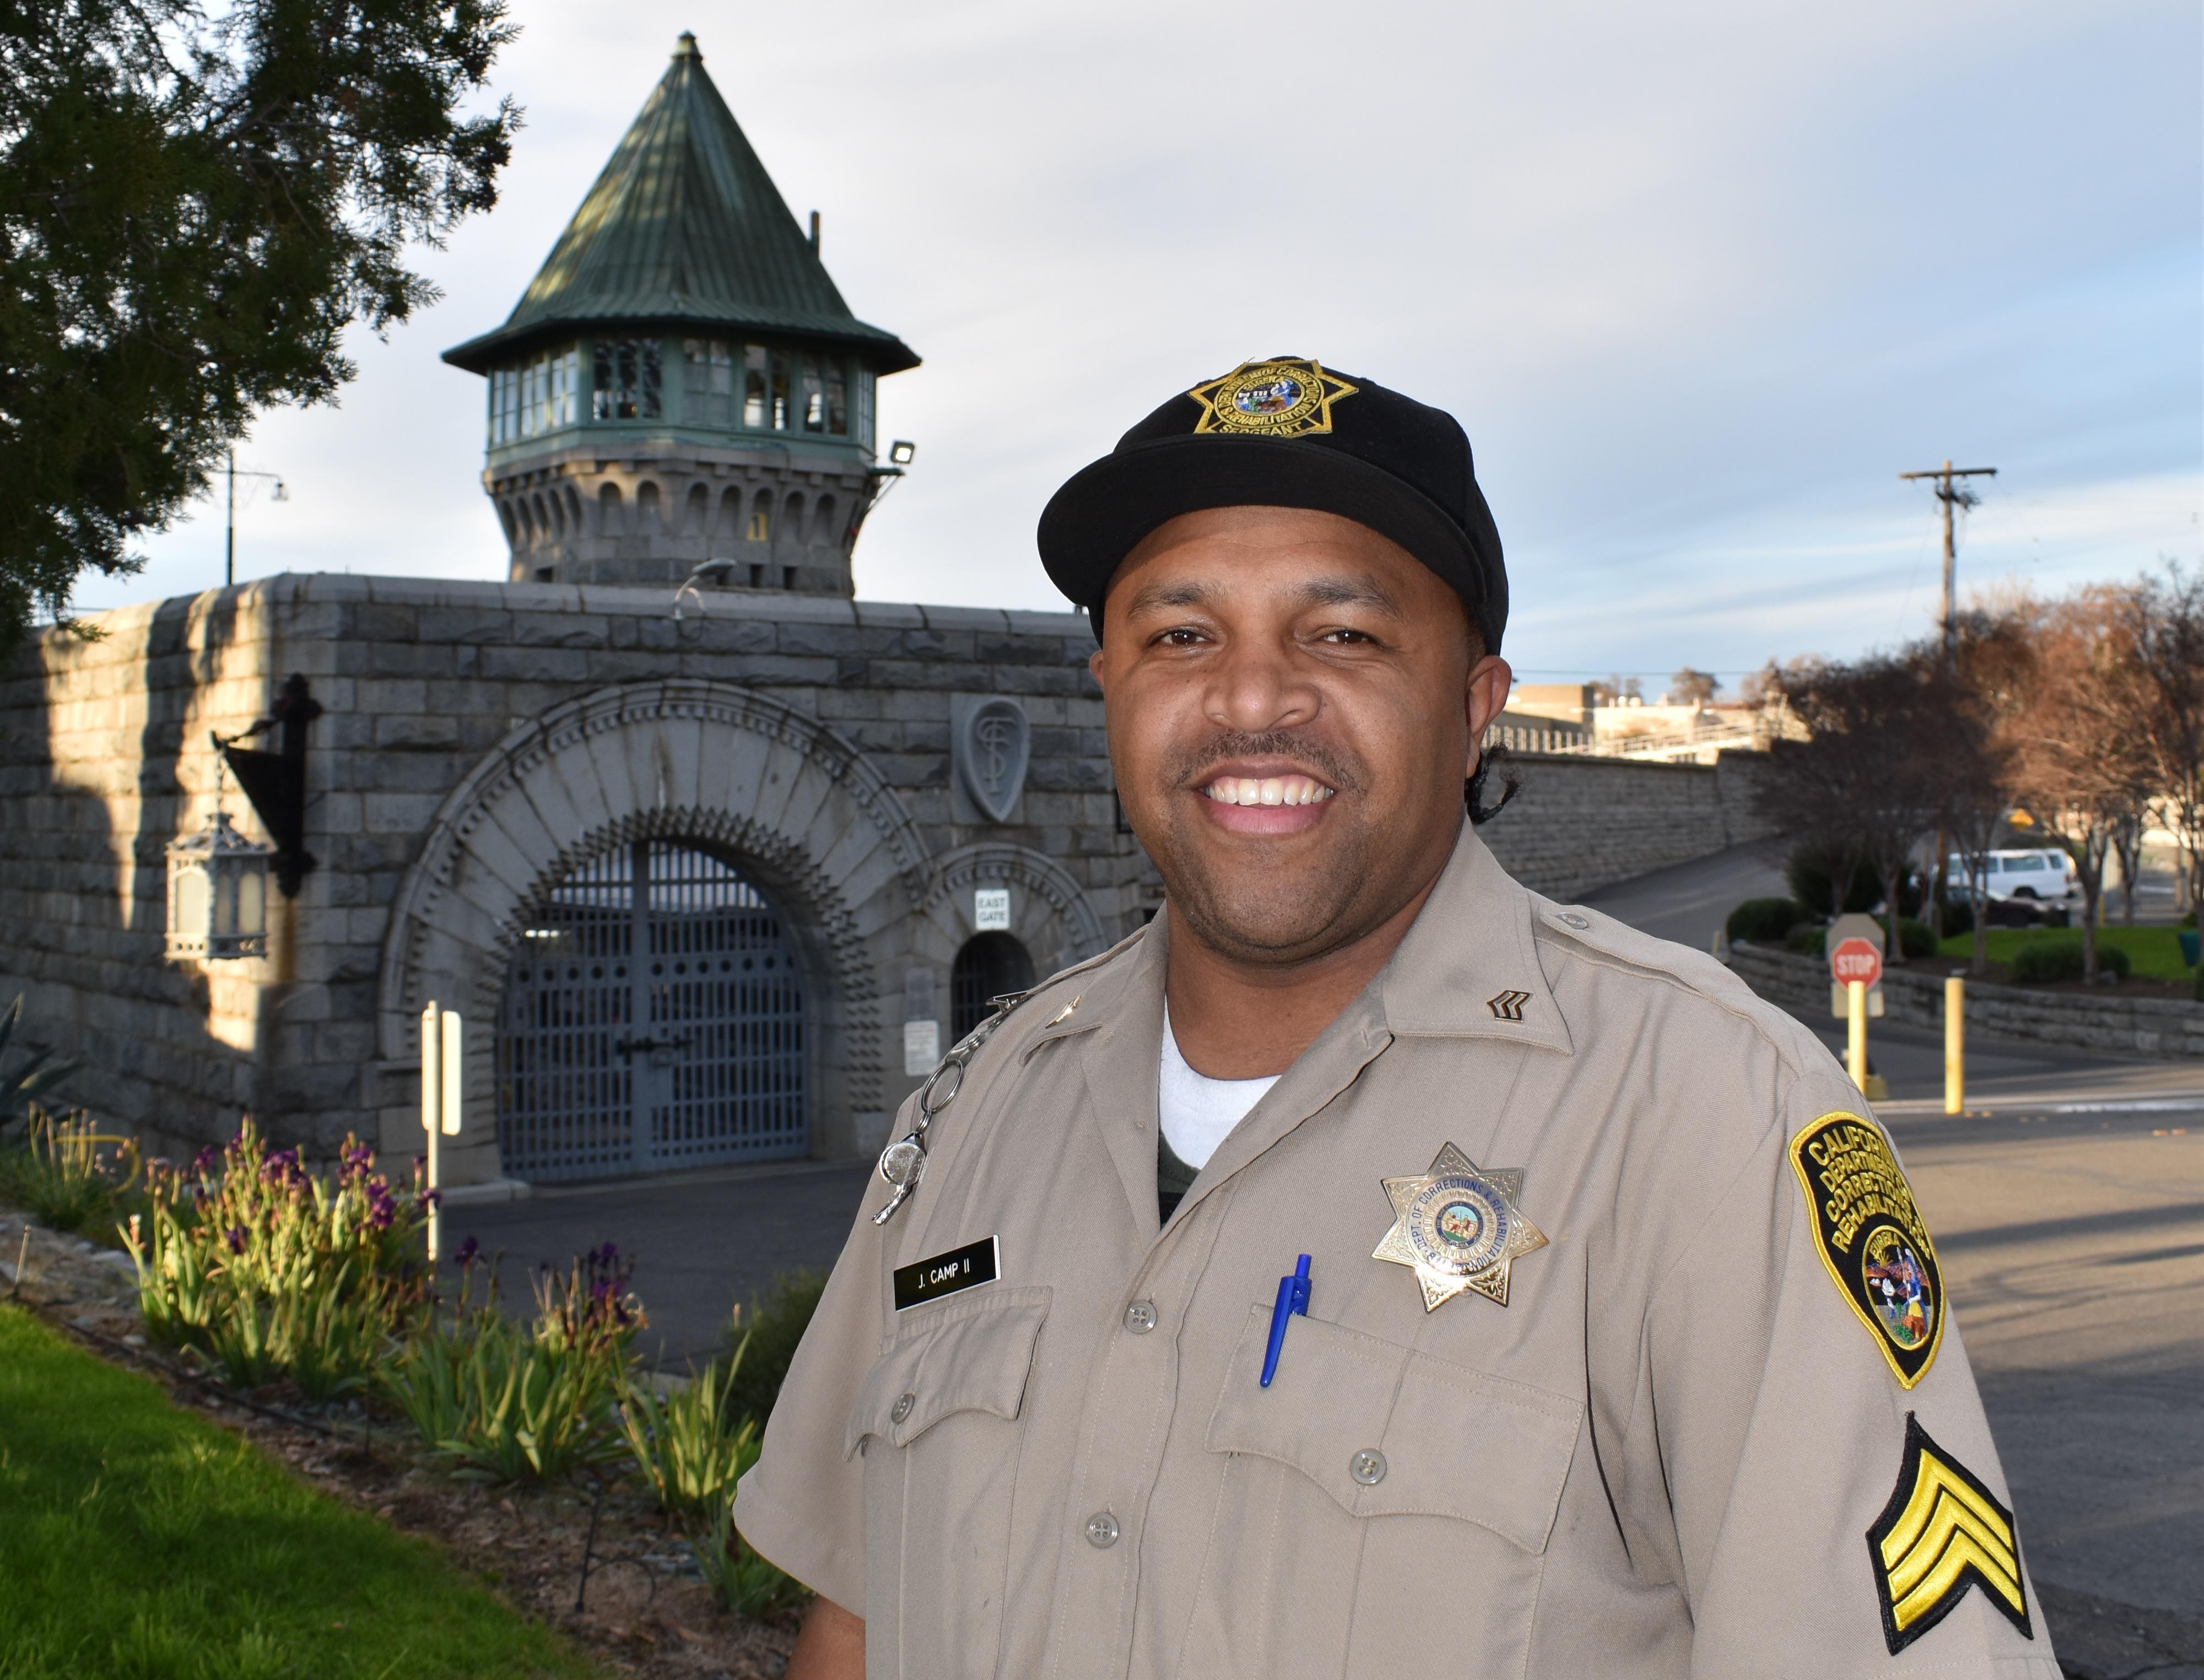 Uniformed man stands in front of gothic stone wall and tower.